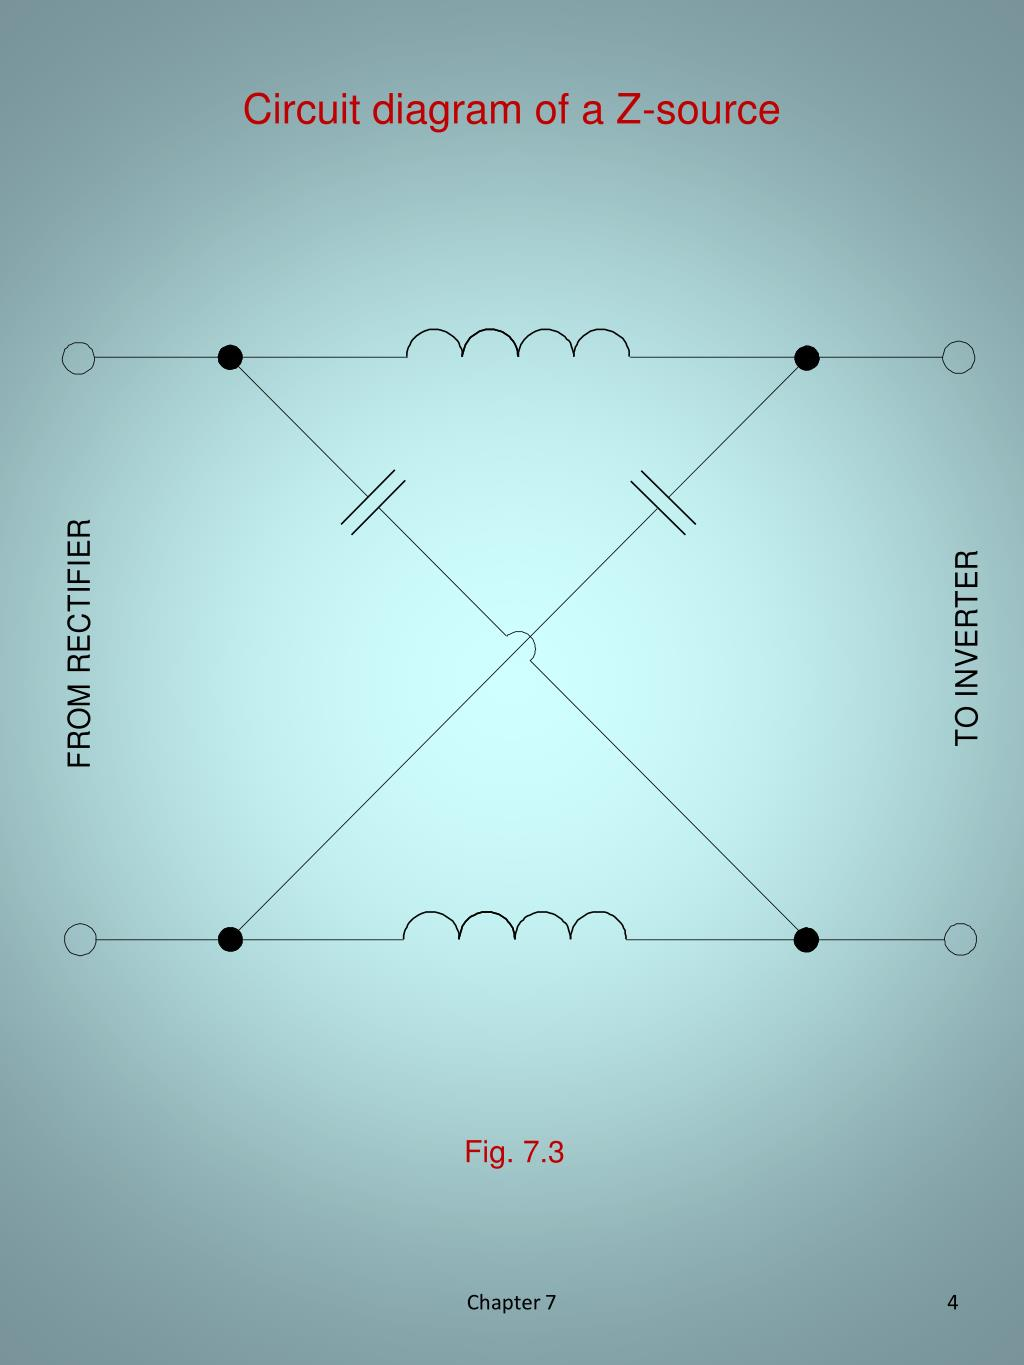 hight resolution of circuit diagram of a z source fig